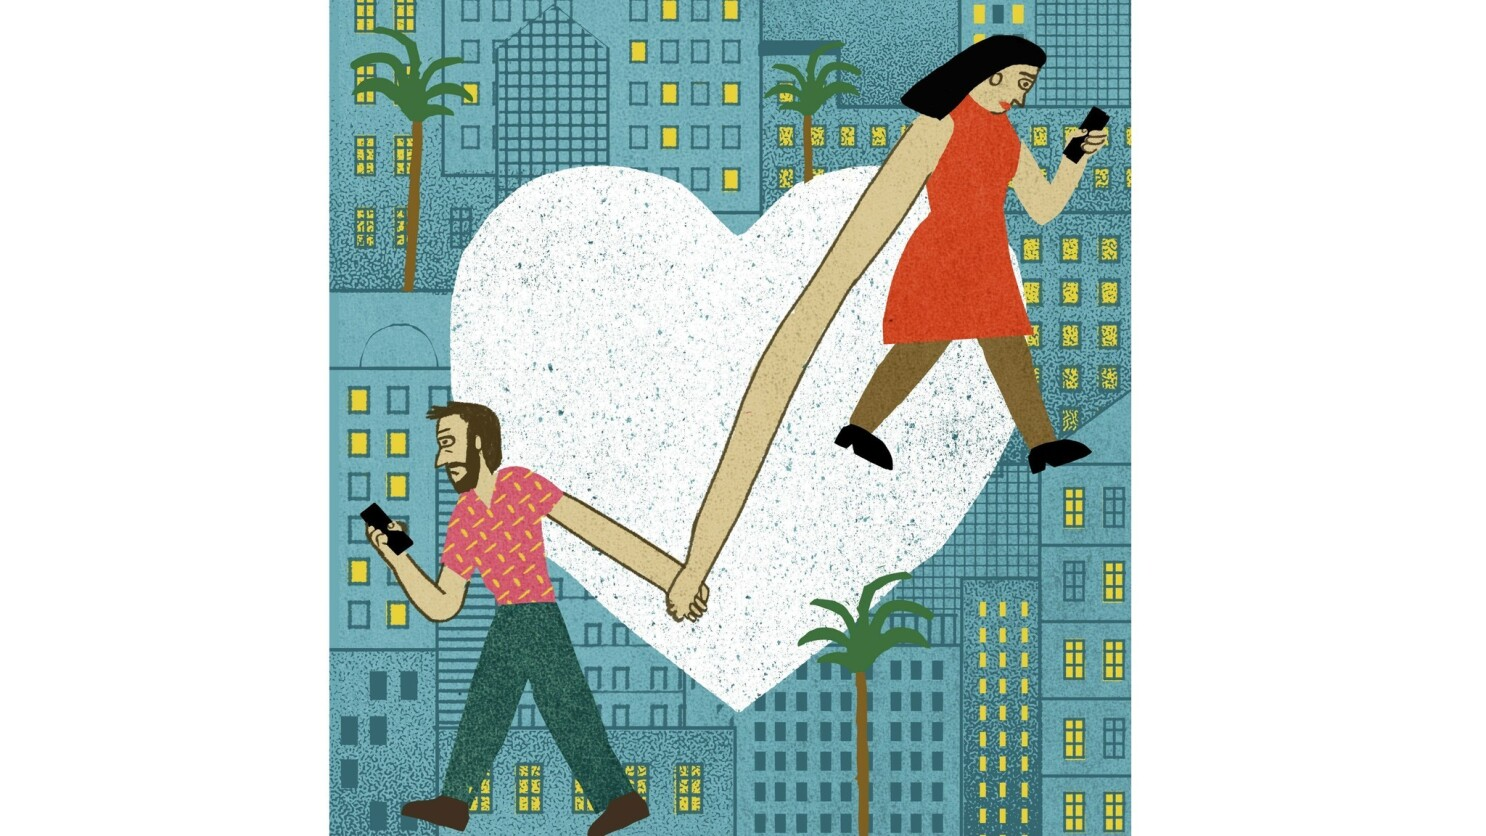 L.A. Affairs: Why dating in L.A. comes down to ZIP Codes - Los Angeles Times